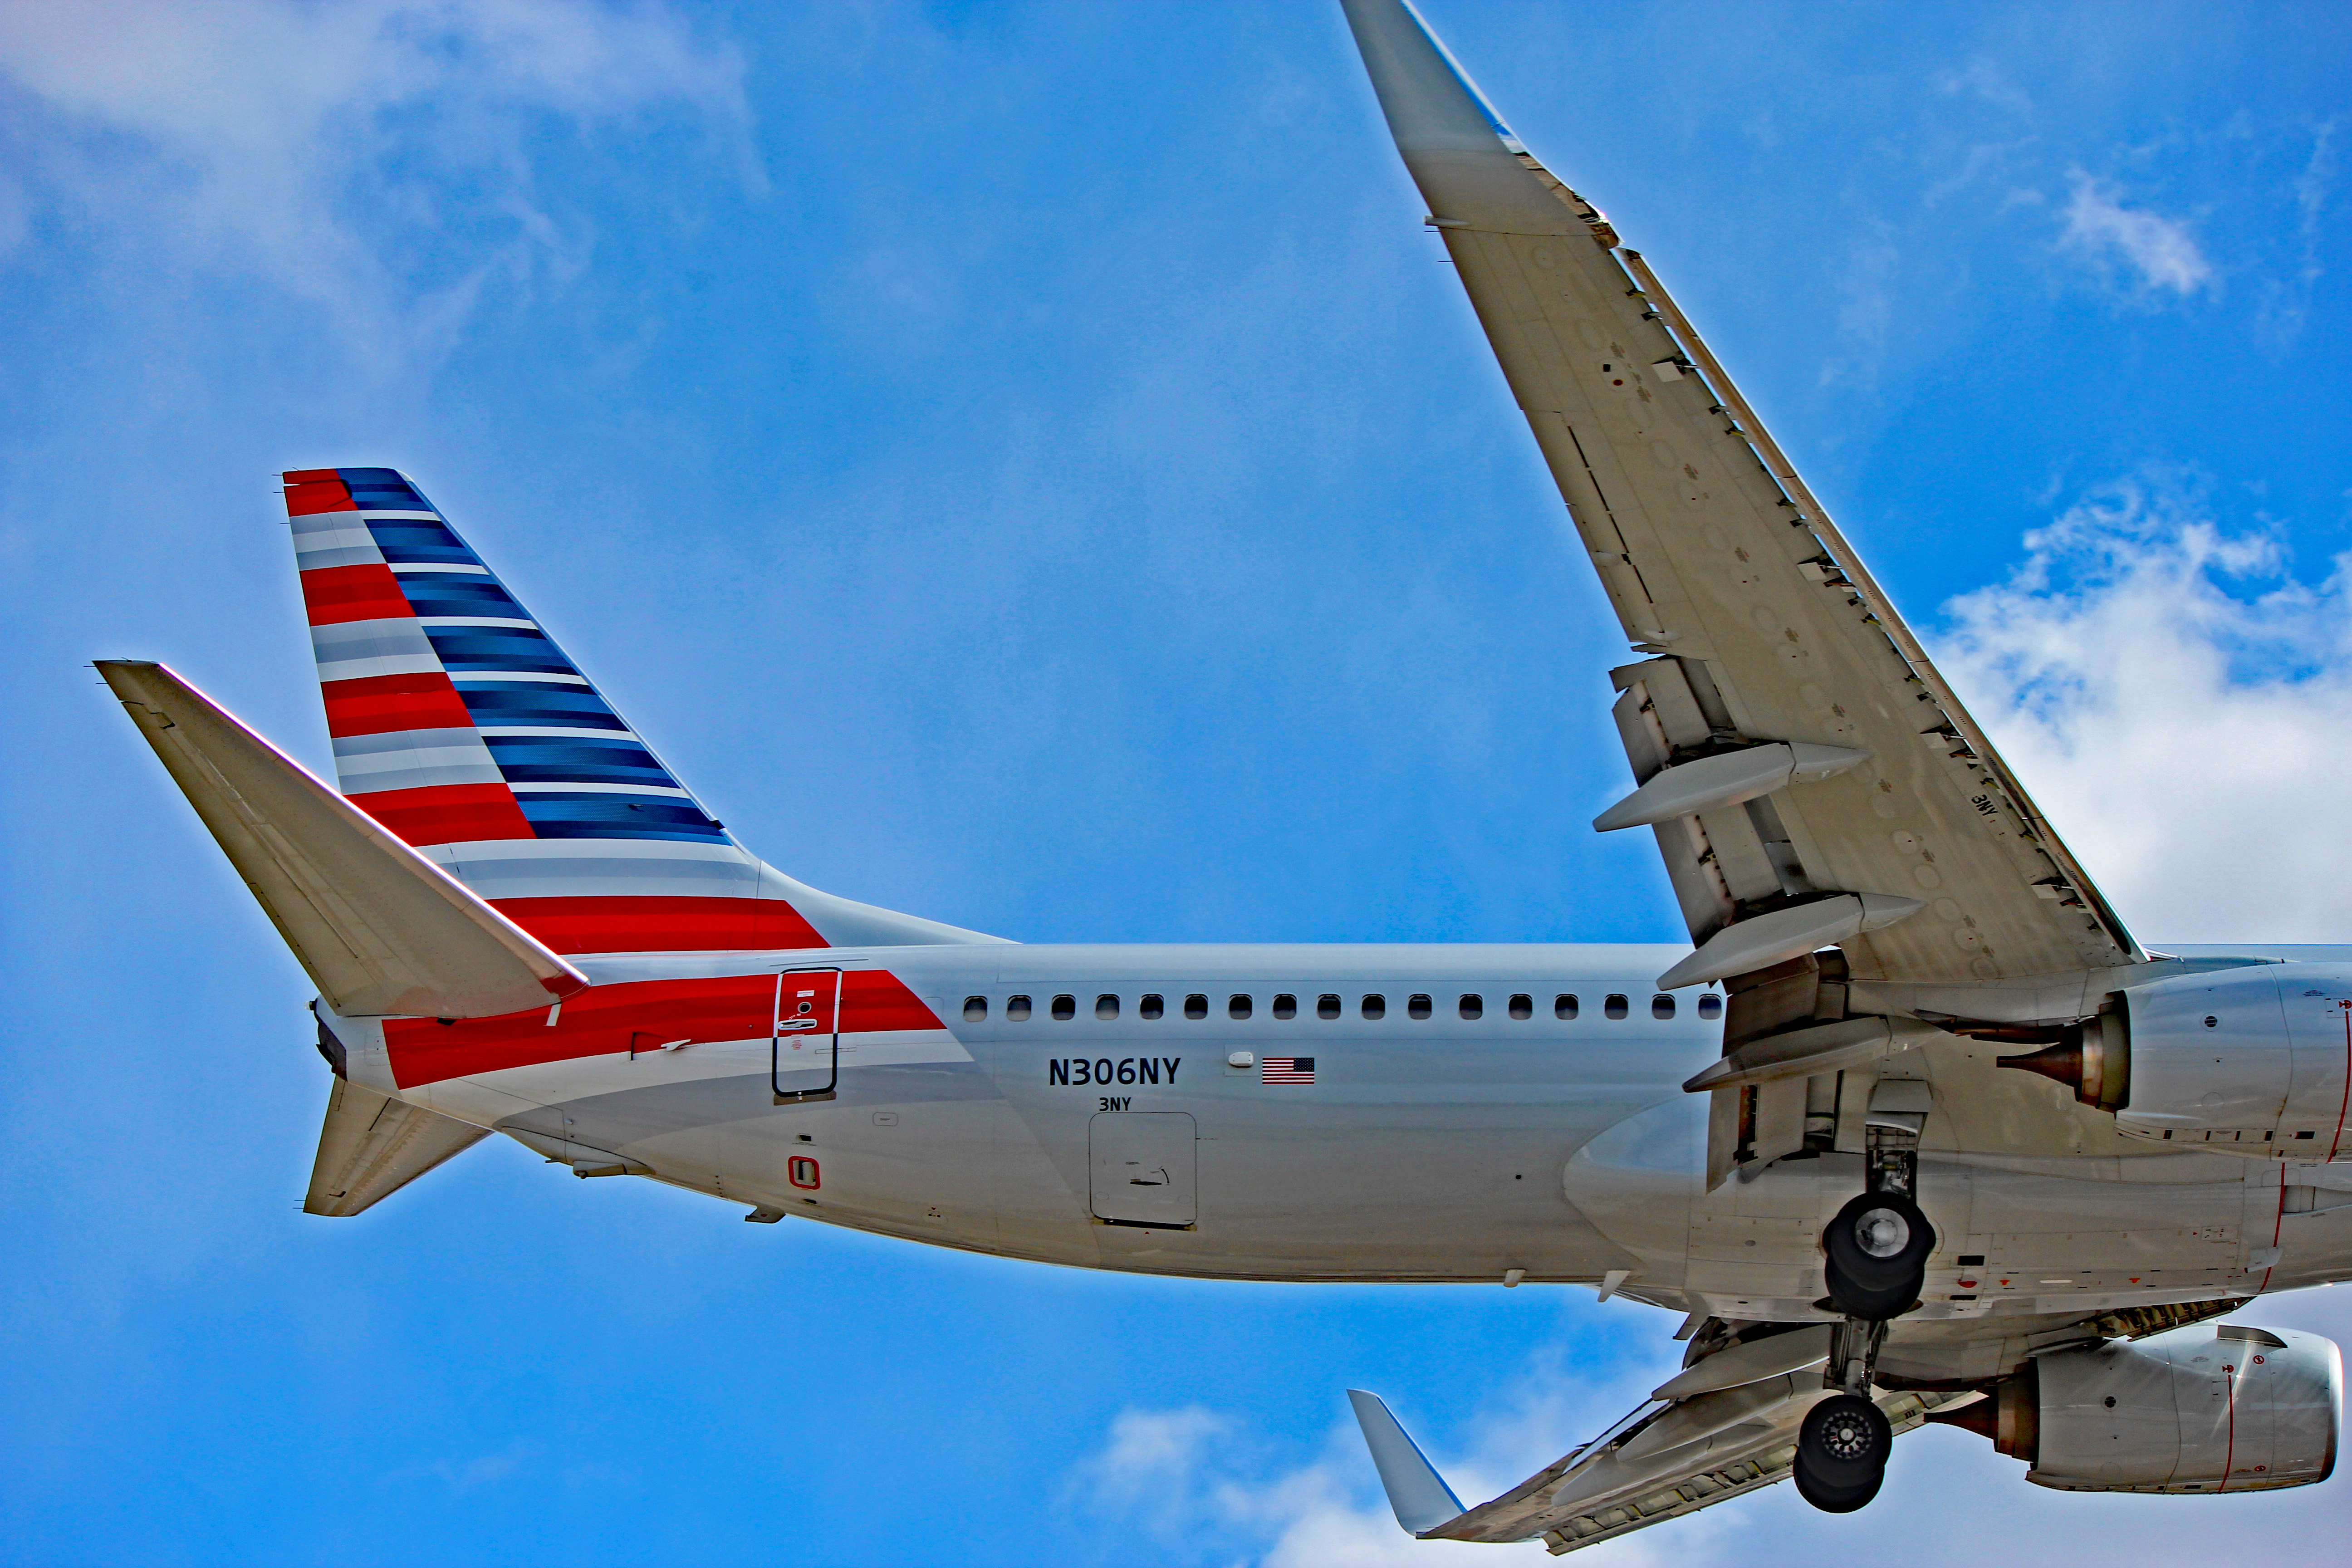 N306ny American Airlines Boeing 737 800 At Toronto